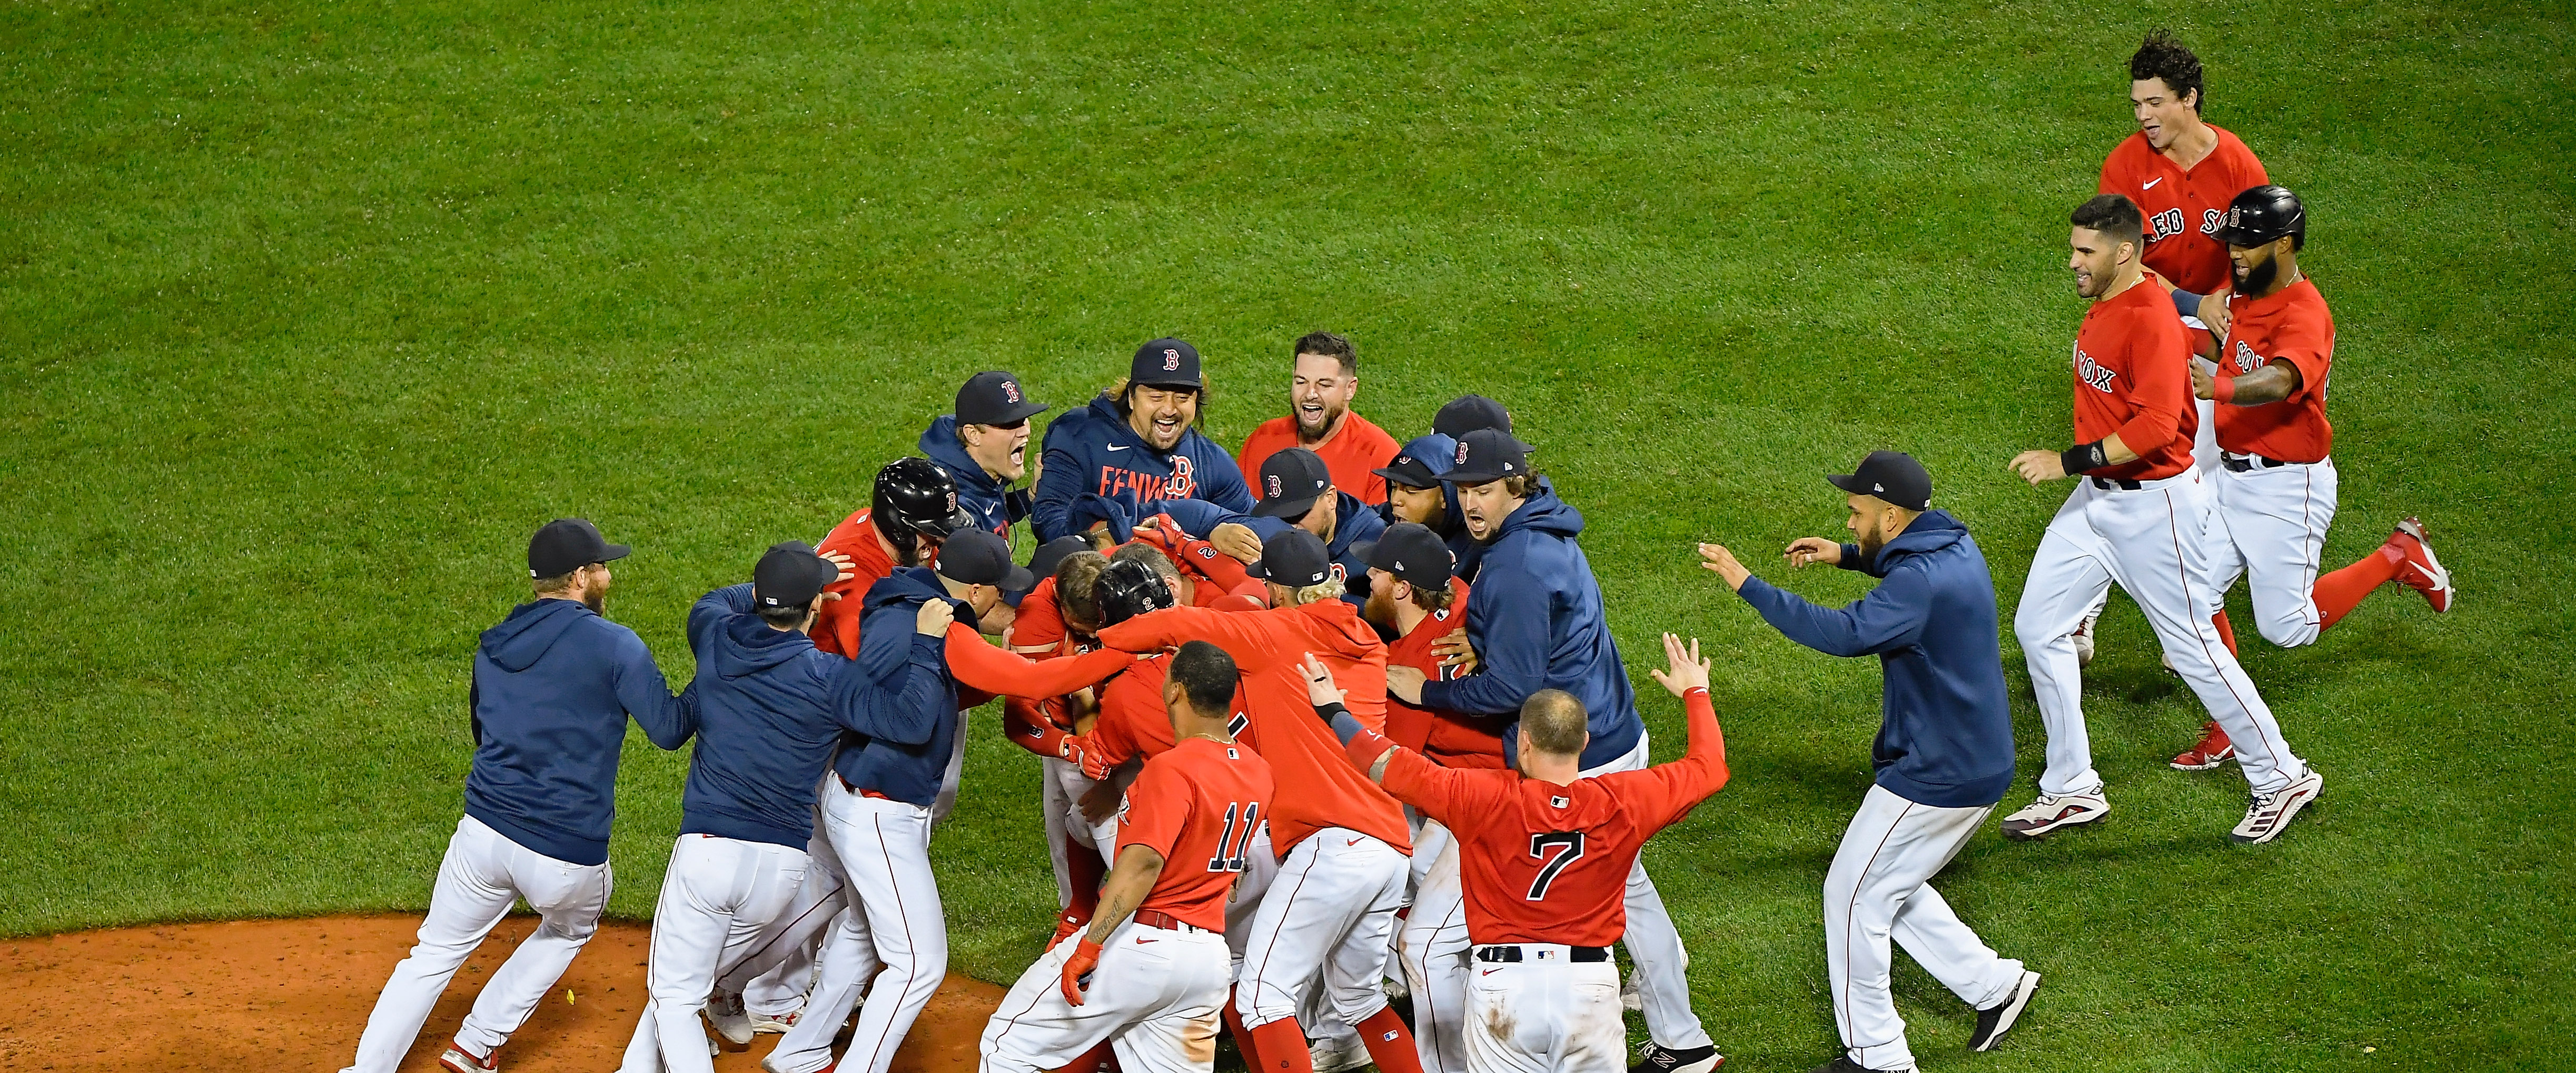 Walk off to win the series! Red Sox move on to the ALCS